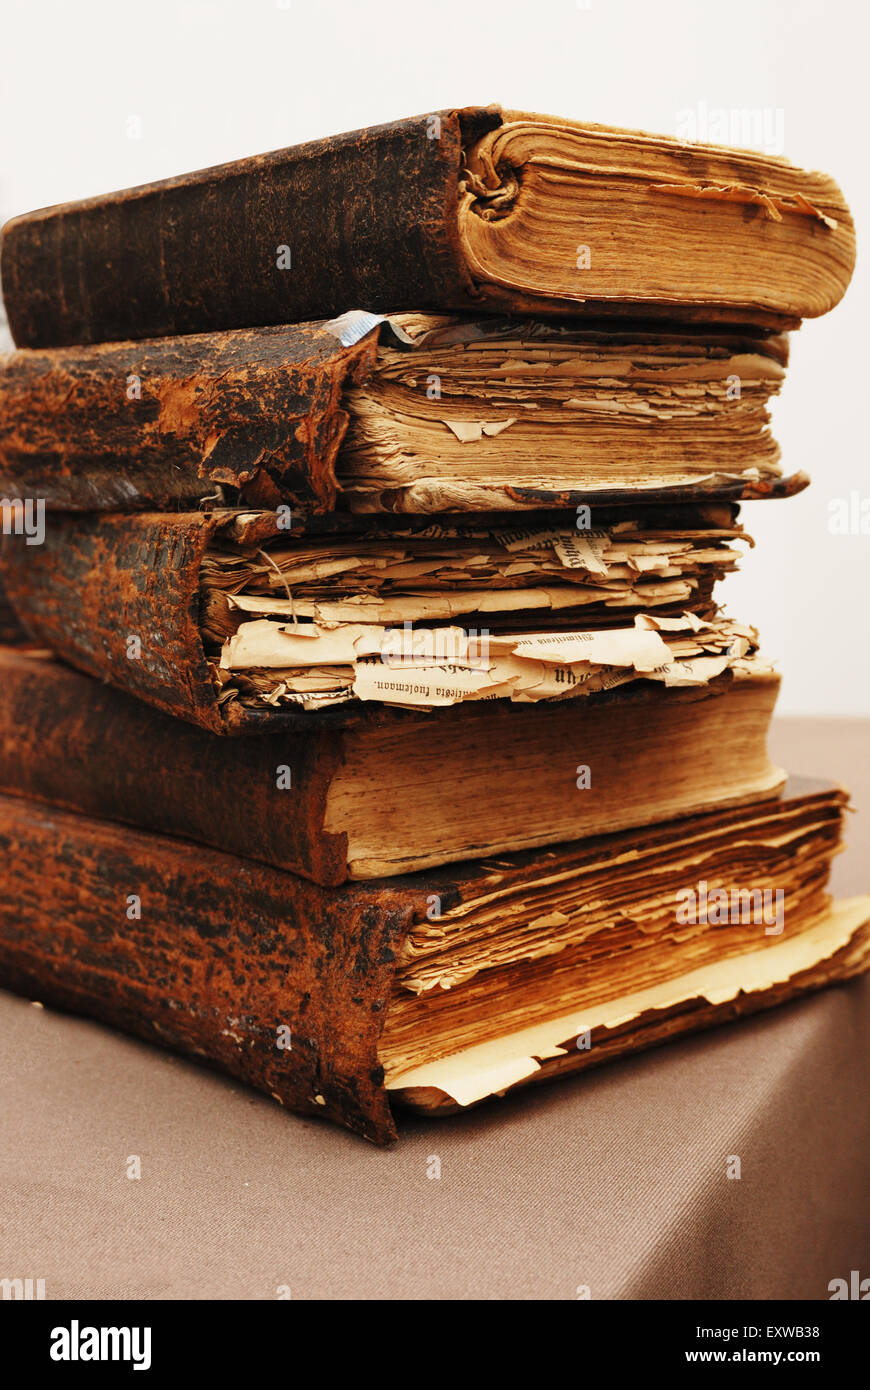 stack of old tattered books on the table stock photo 85380044 alamy